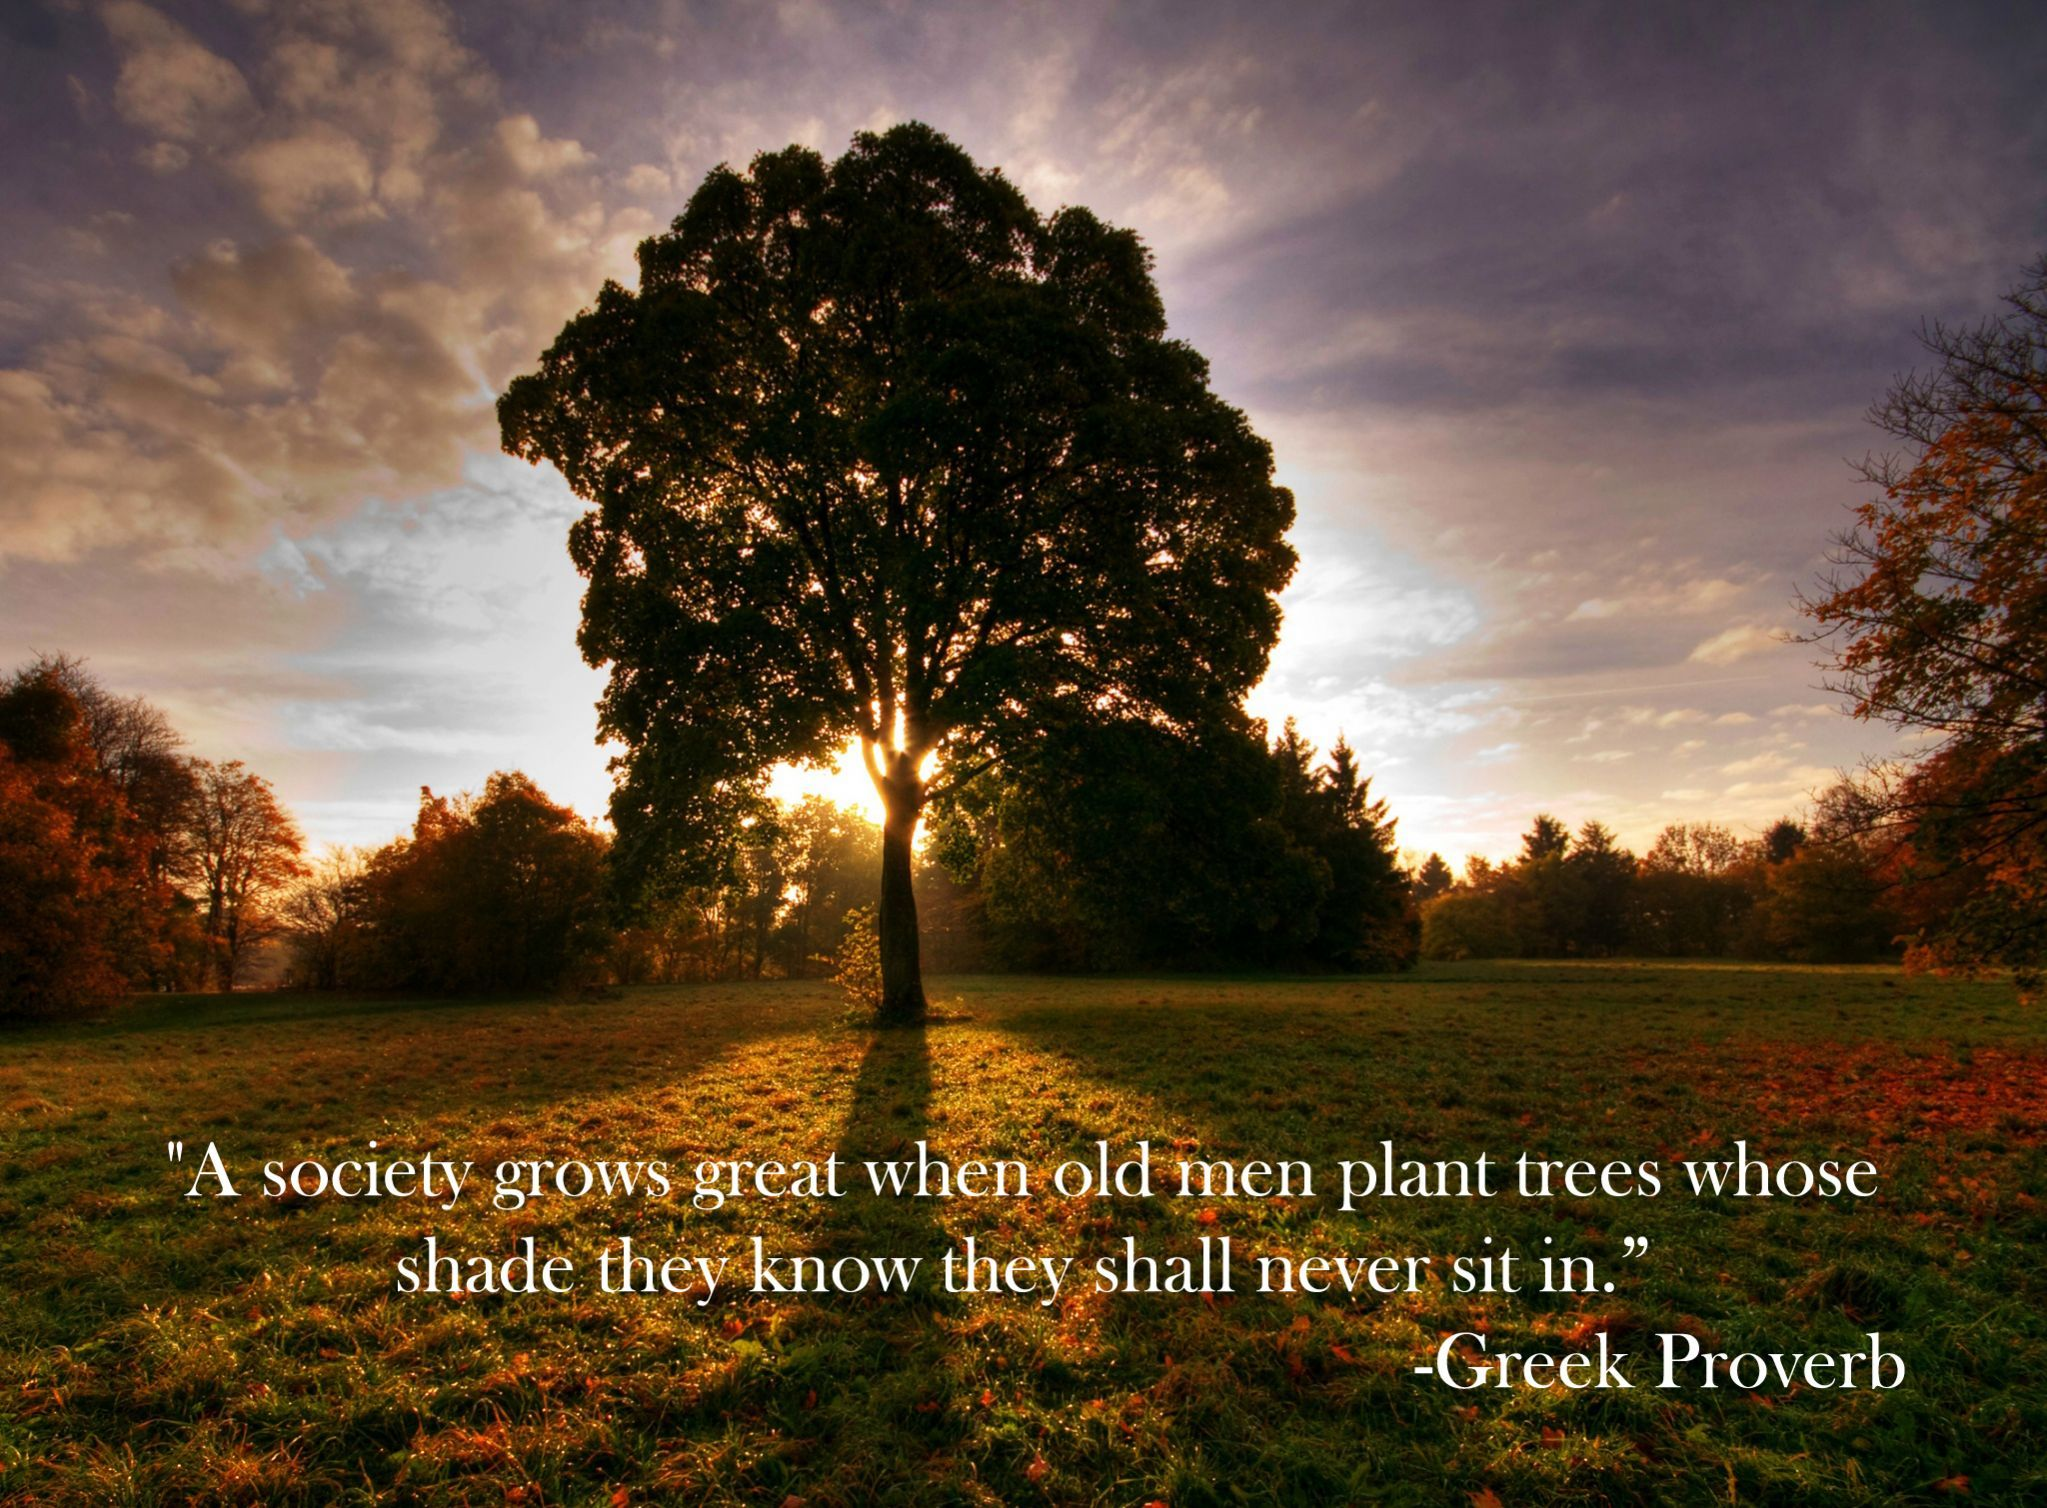 """A society grows great when old men plant trees whose shade they know they shall never sit in"" – Greek proverb [2047*1508]"